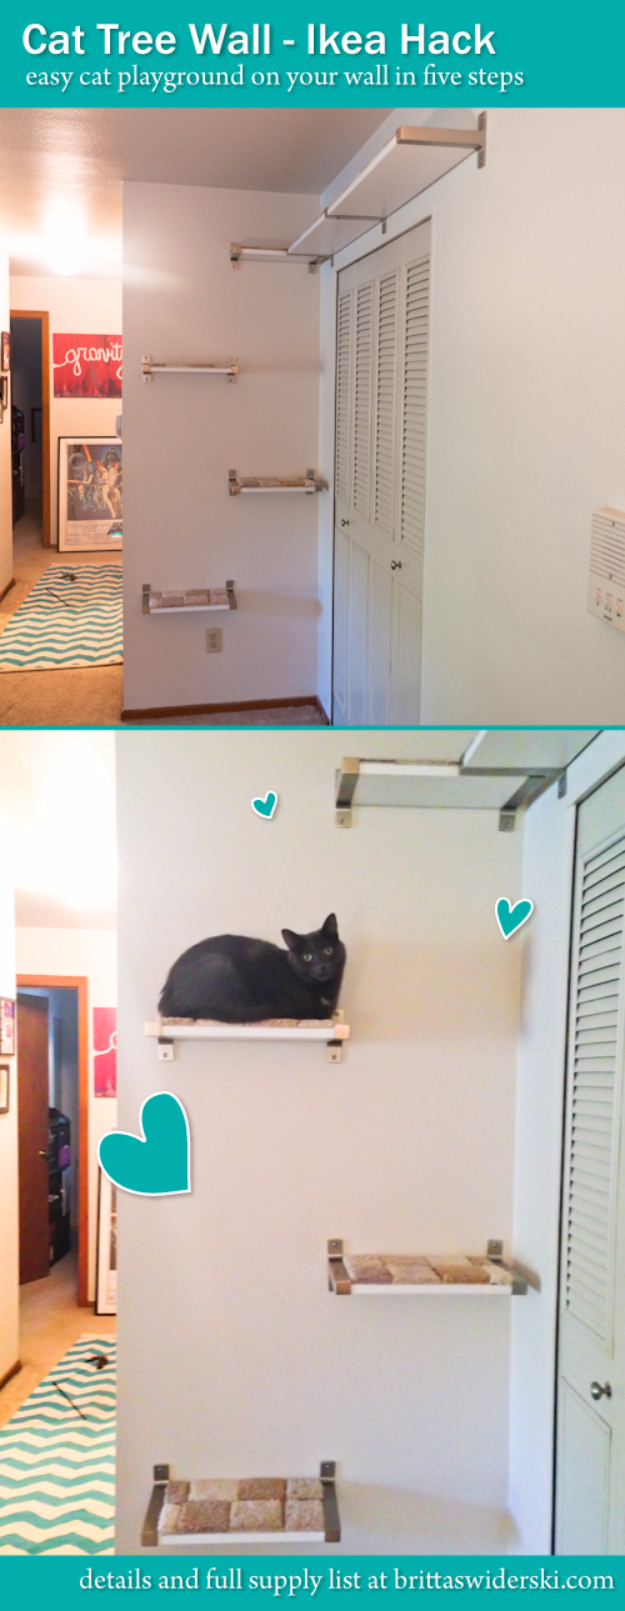 DIY Cat Hacks - Cat Tree Wall Ikea Hack - Tips and Tricks Ideas for Cat Beds and Toys, Homemade Remedies for Fleas and Scratching - Do It Yourself Cat Treat Recips, Food and Gear for Your Pet - Cool Gifts for Cats #cathacks #cats #pets